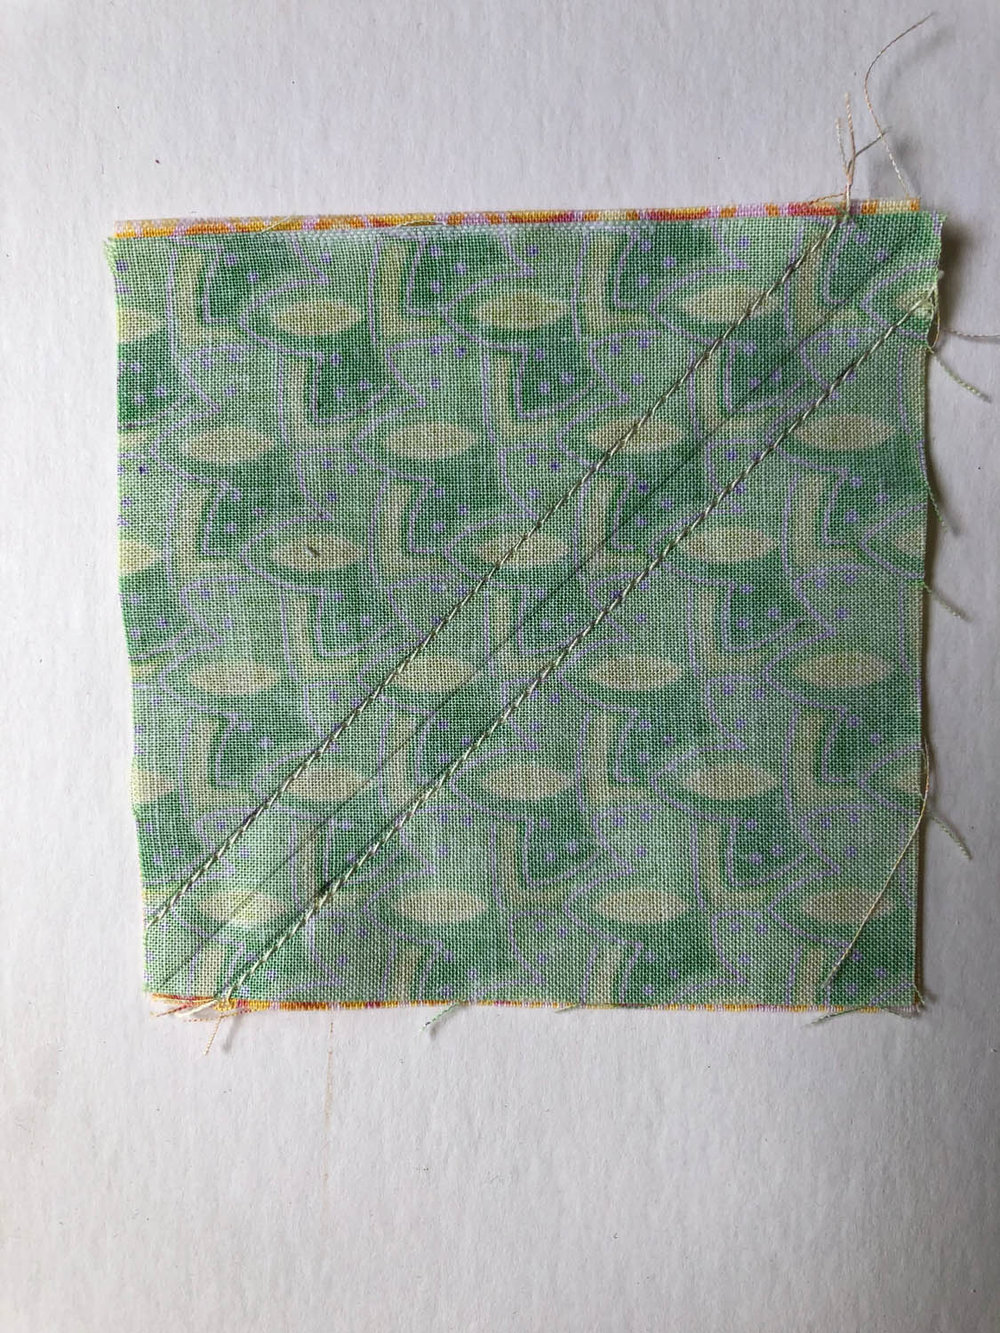 sewing fast half-square triangle units